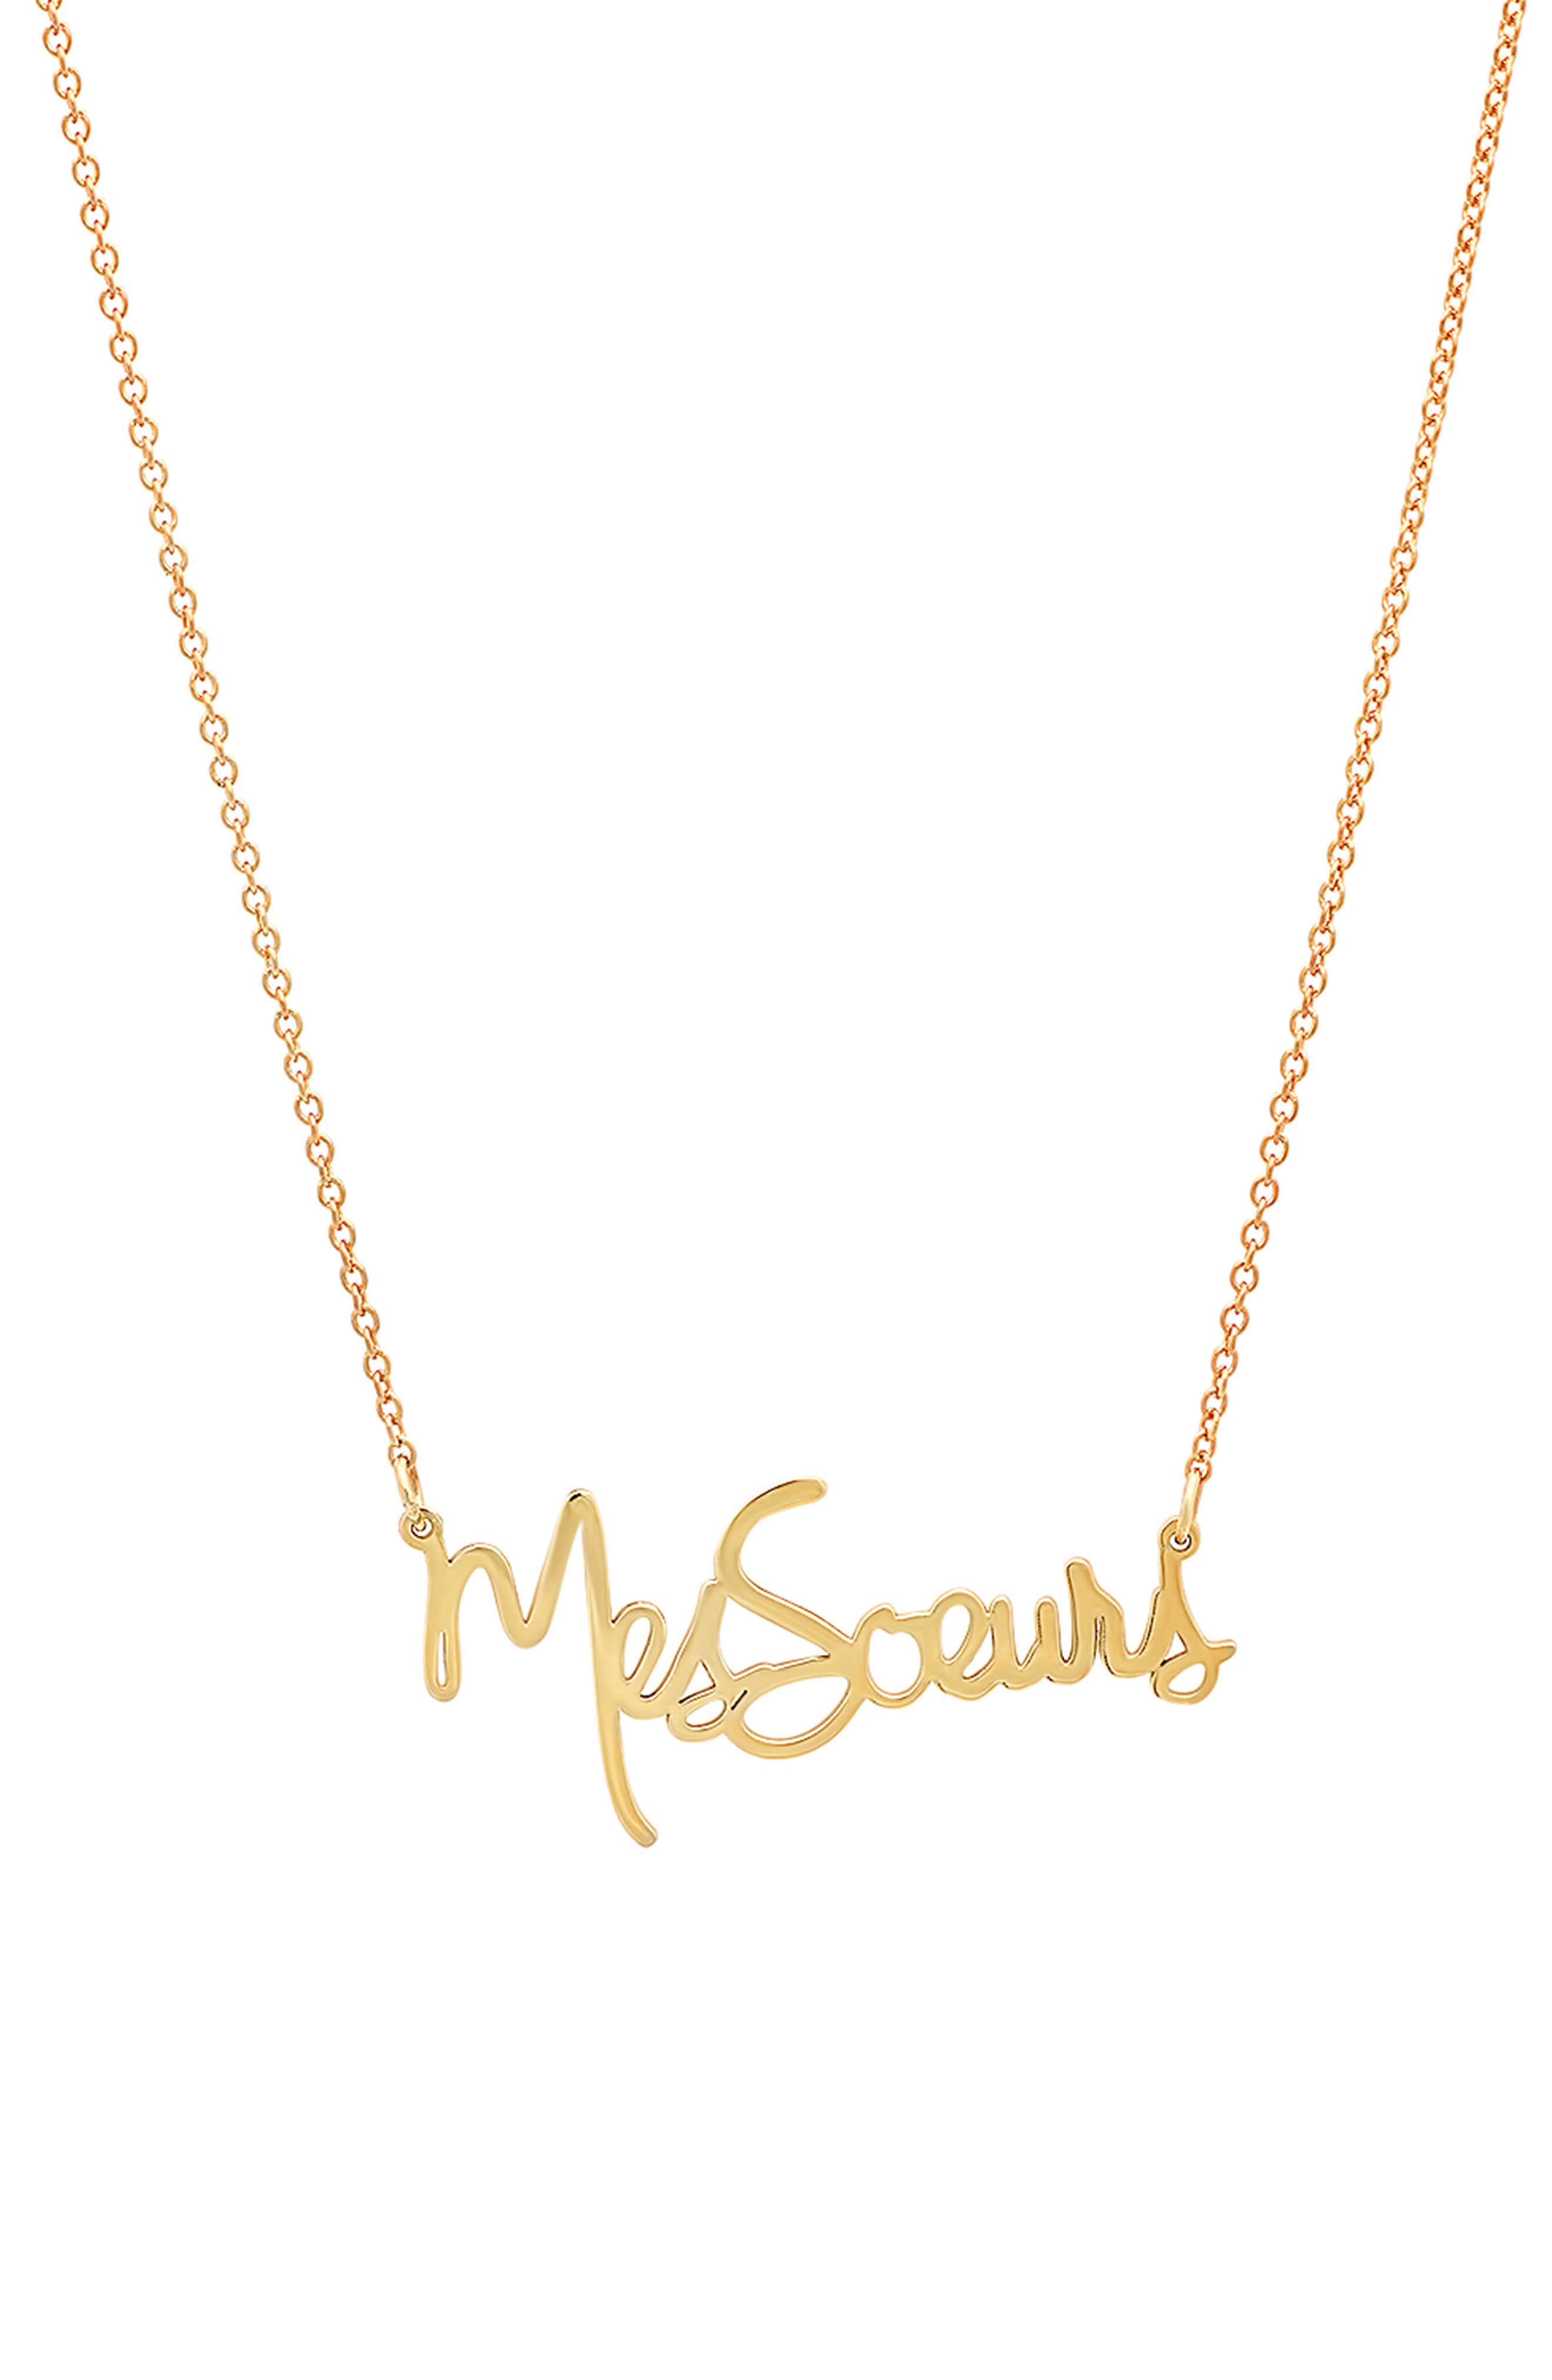 x Striiike Salon Mes Soeurs Pendant Necklace,                             Main thumbnail 1, color,                             YELLOW GOLD